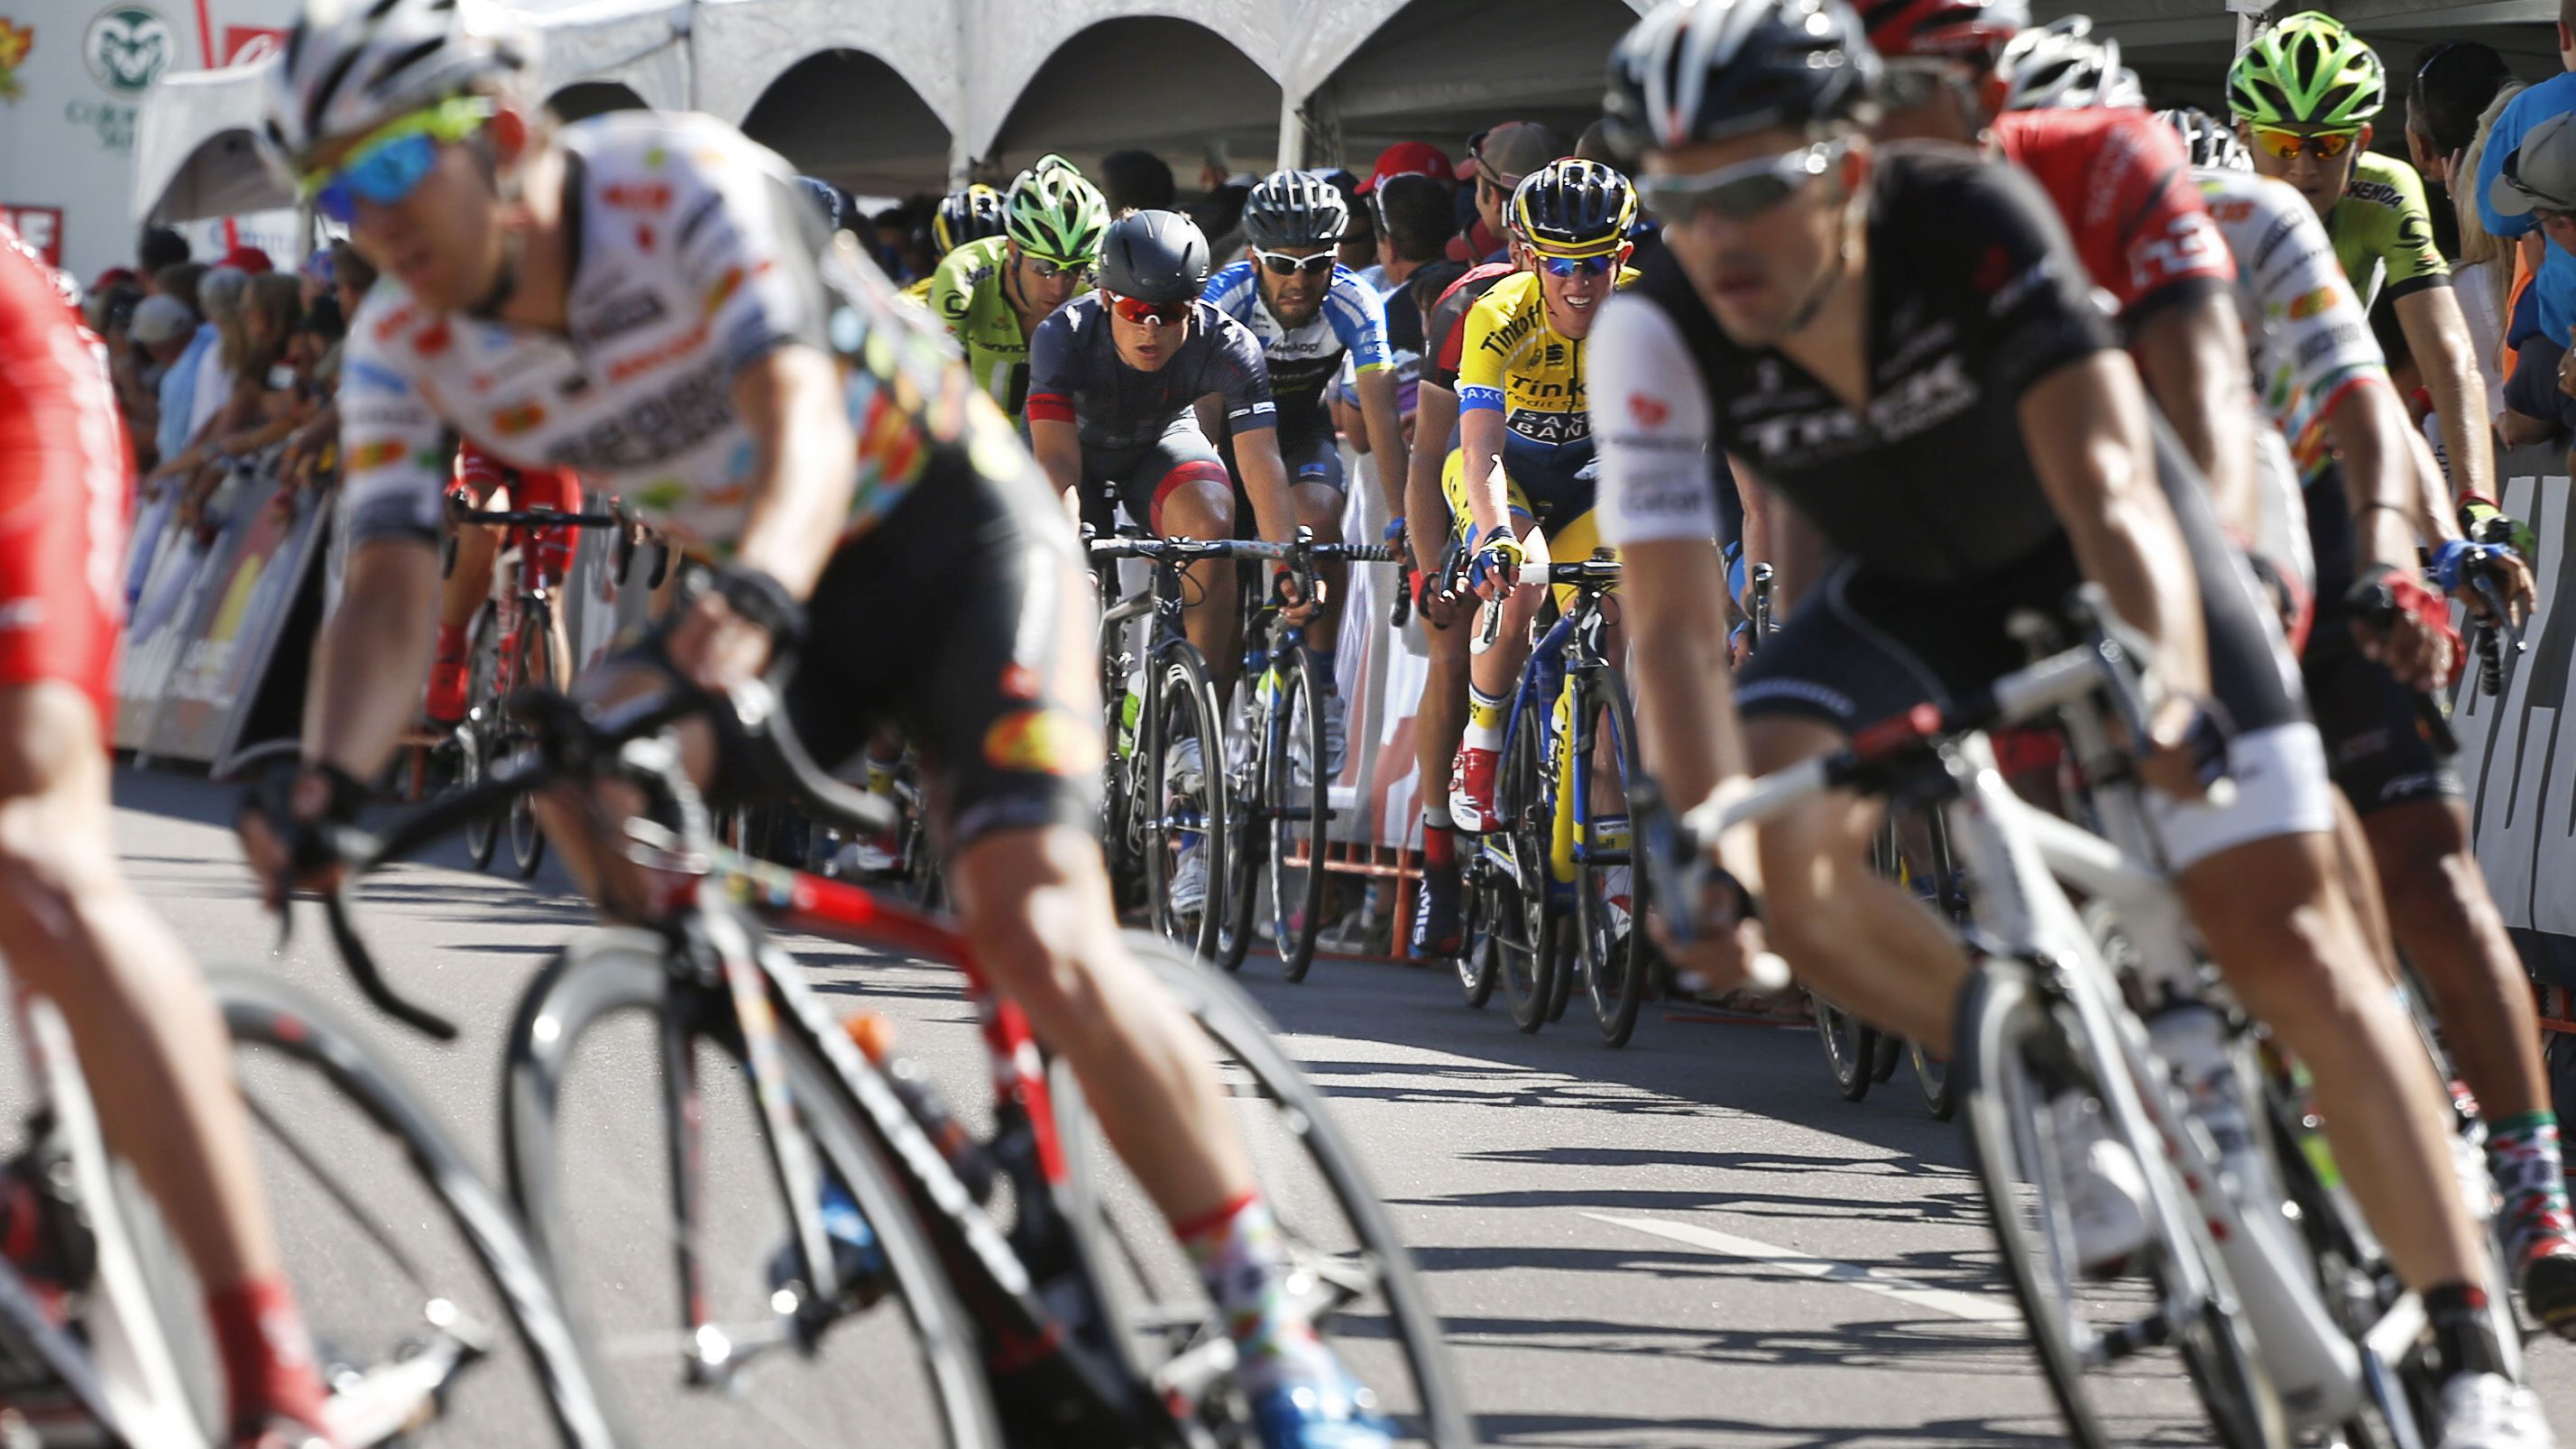 Riders enter a turn during the seventh and final stage of the USA Pro Challenge bike race, in Denver, Sunday Aug. 24, 2014. The 78-mile seventh stage started in Boulder, looped above Golden, and finished up with several laps around downtown Denver. (AP Photo/Brennan Linsley)